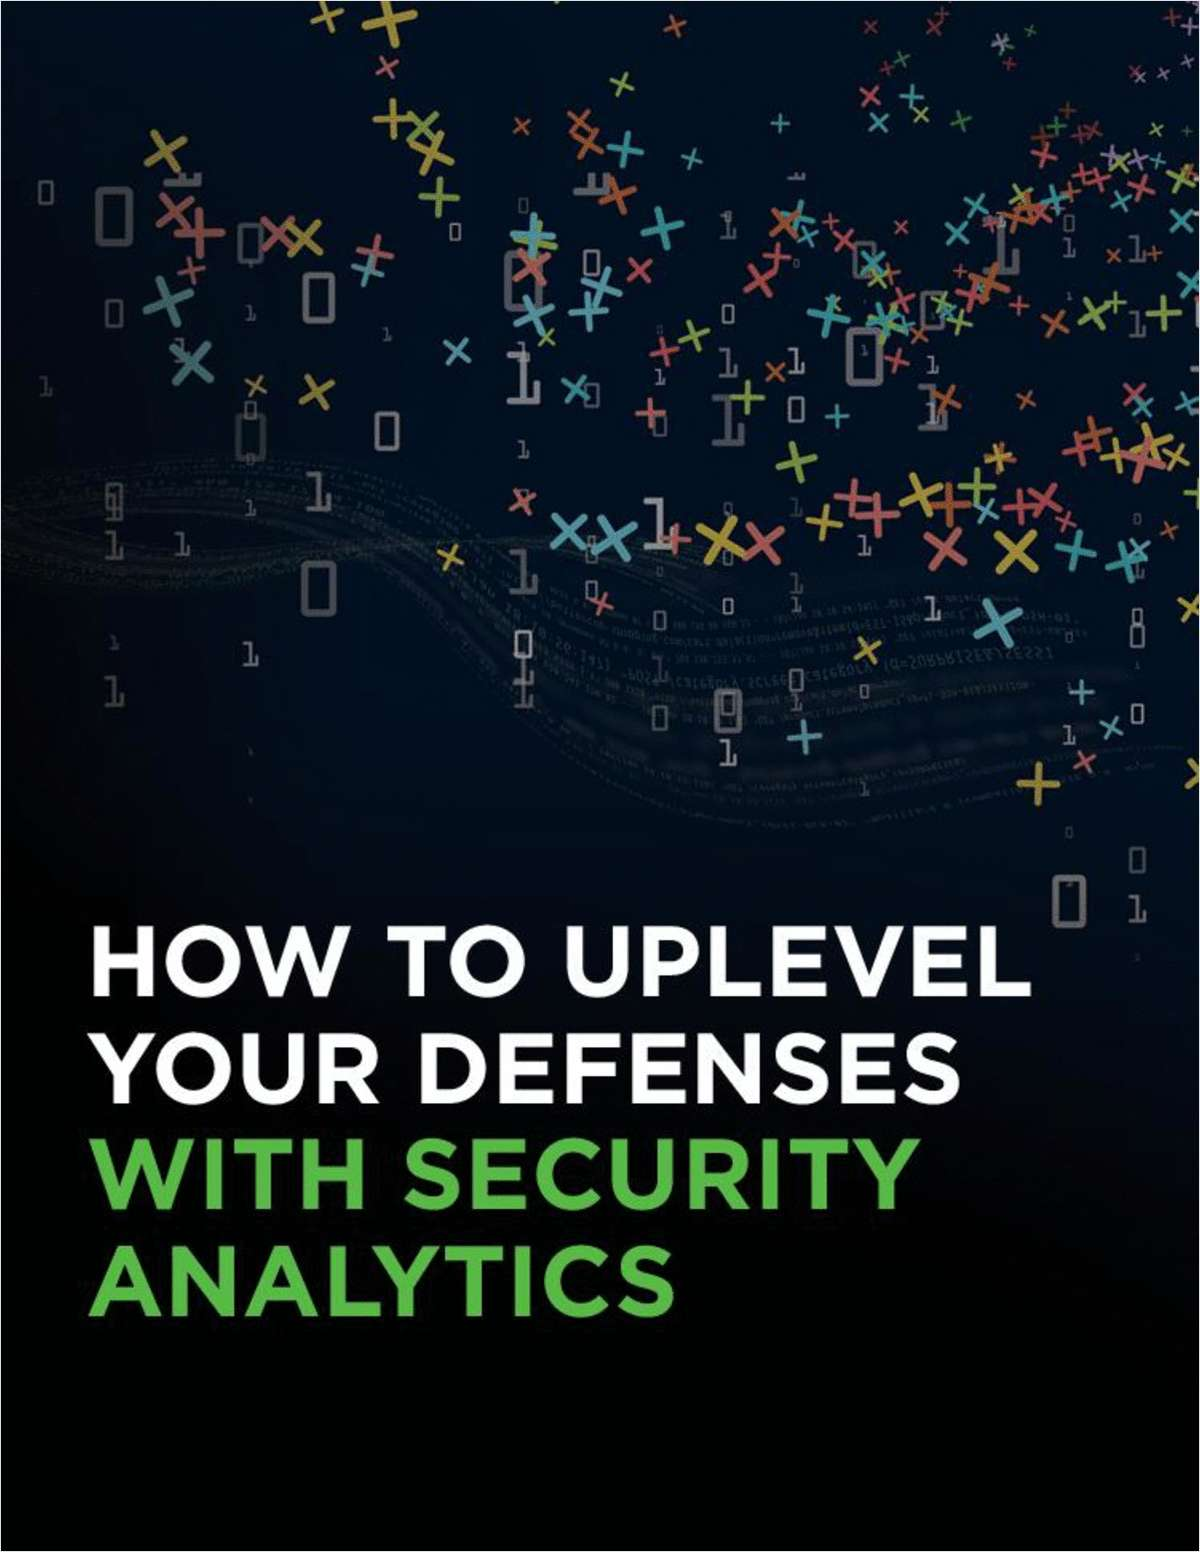 How to Uplevel your Defenses With Security Analytics